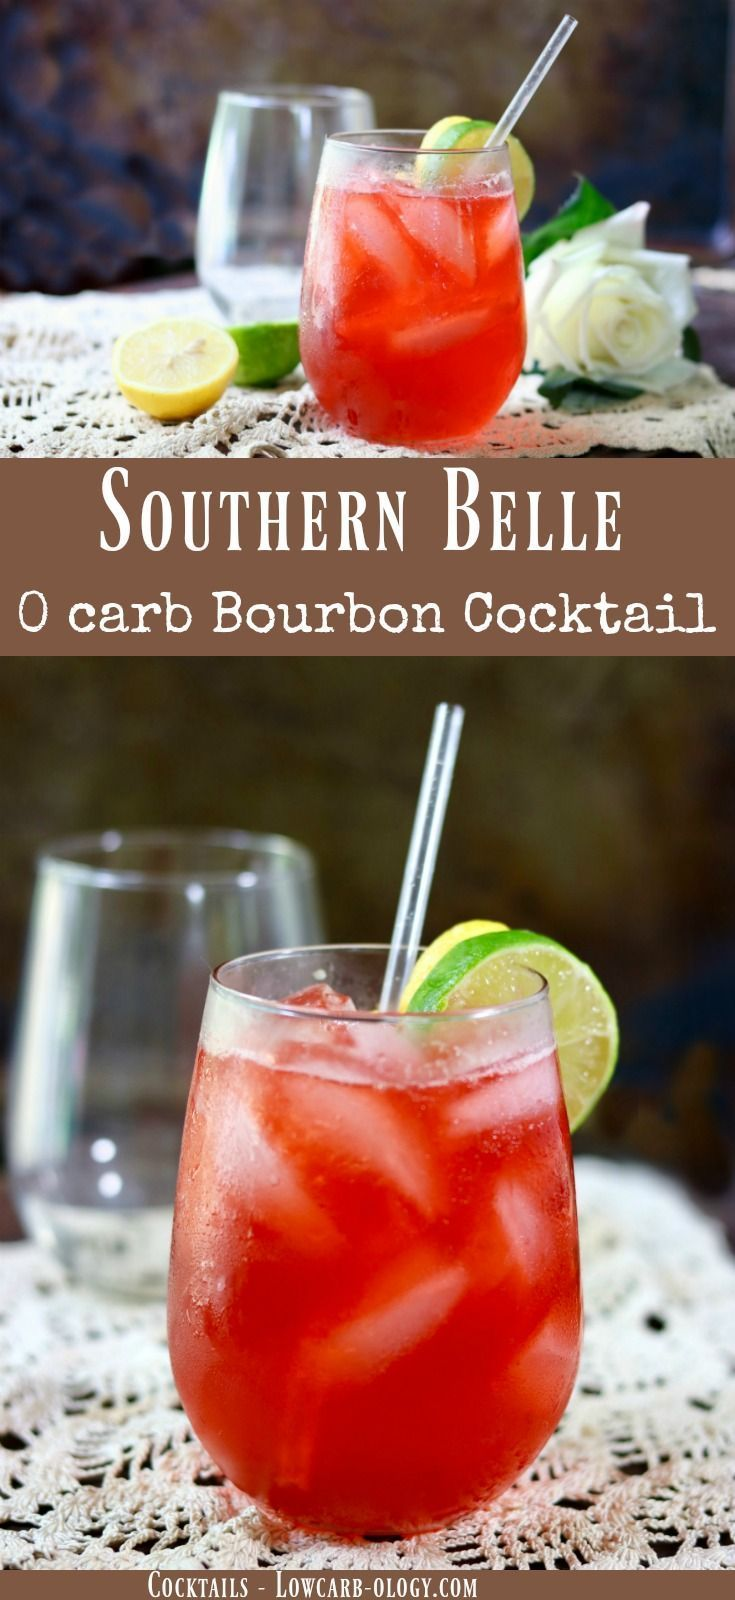 This summer bourbon cocktail recipe is light and refreshing, sweet and tangy, and perfect for long summer afternoons! Just 130 calories and 0 carbs! YUMMY! From Lowcarb-ology.com via @Marye at Restless Chipotle